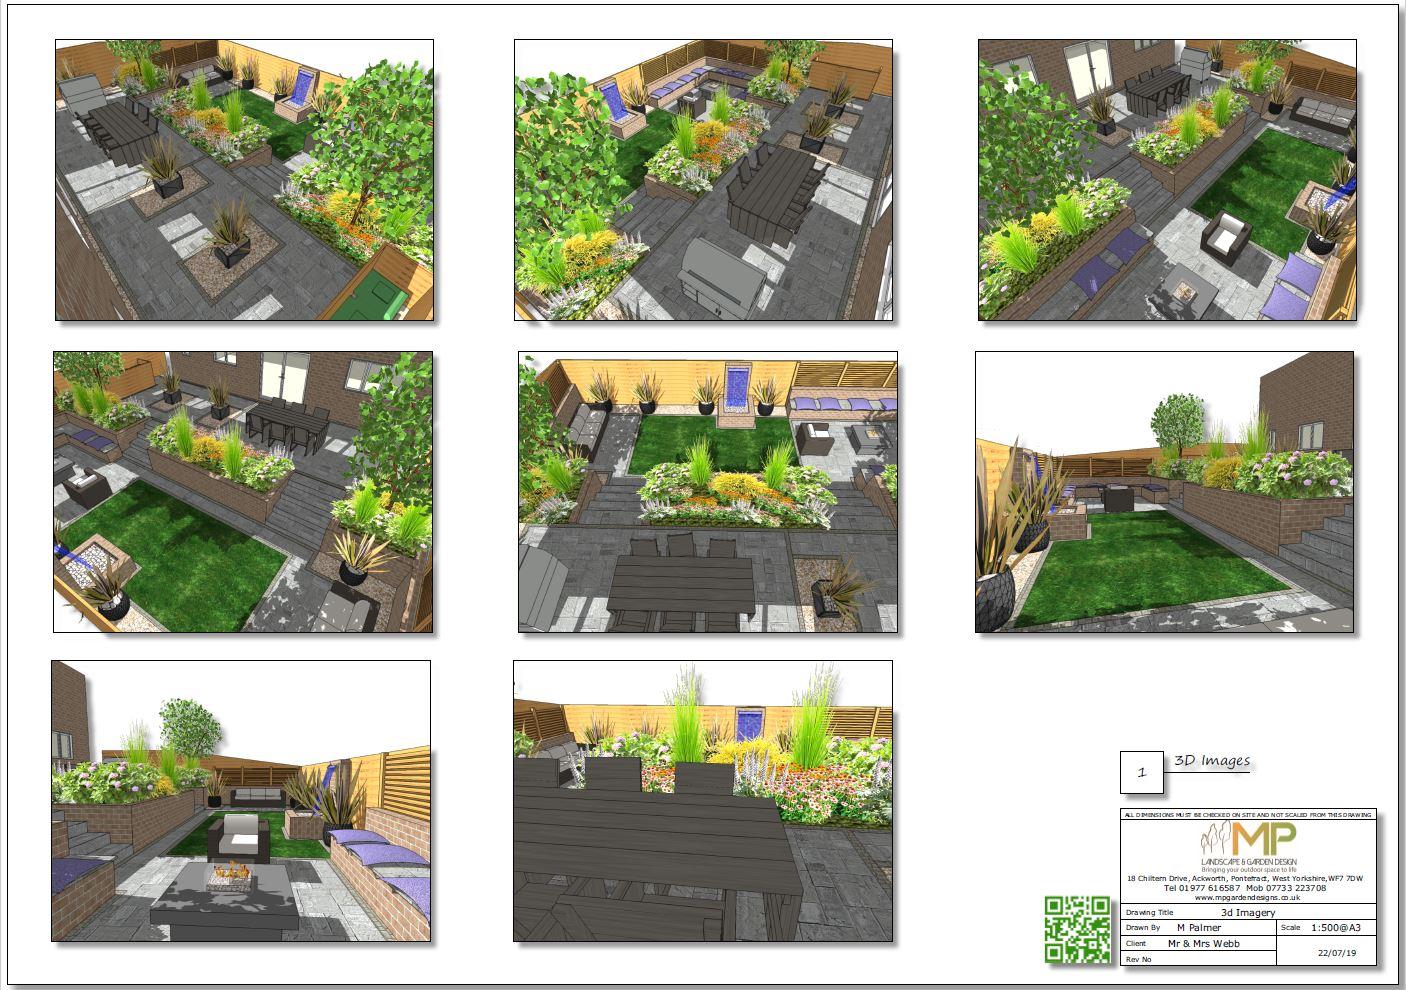 3, 3D colour garden layout plan for a new build property in Pontefract.